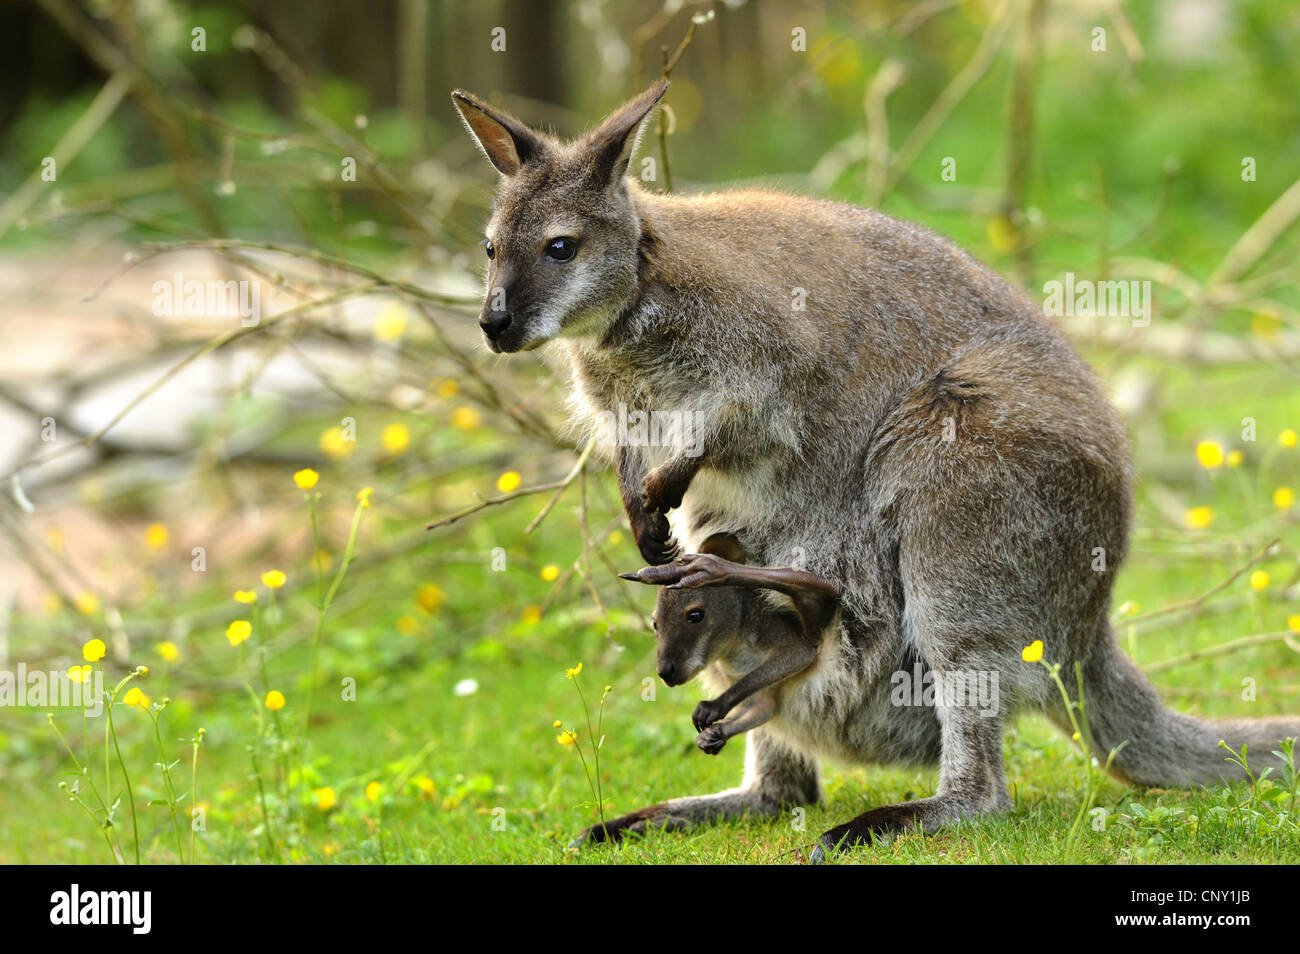 red-necked wallaby, Bennett�s Wallaby (Macropus rufogriseus, Wallabia rufogrisea), mother with pup in its pouch Stock Photo